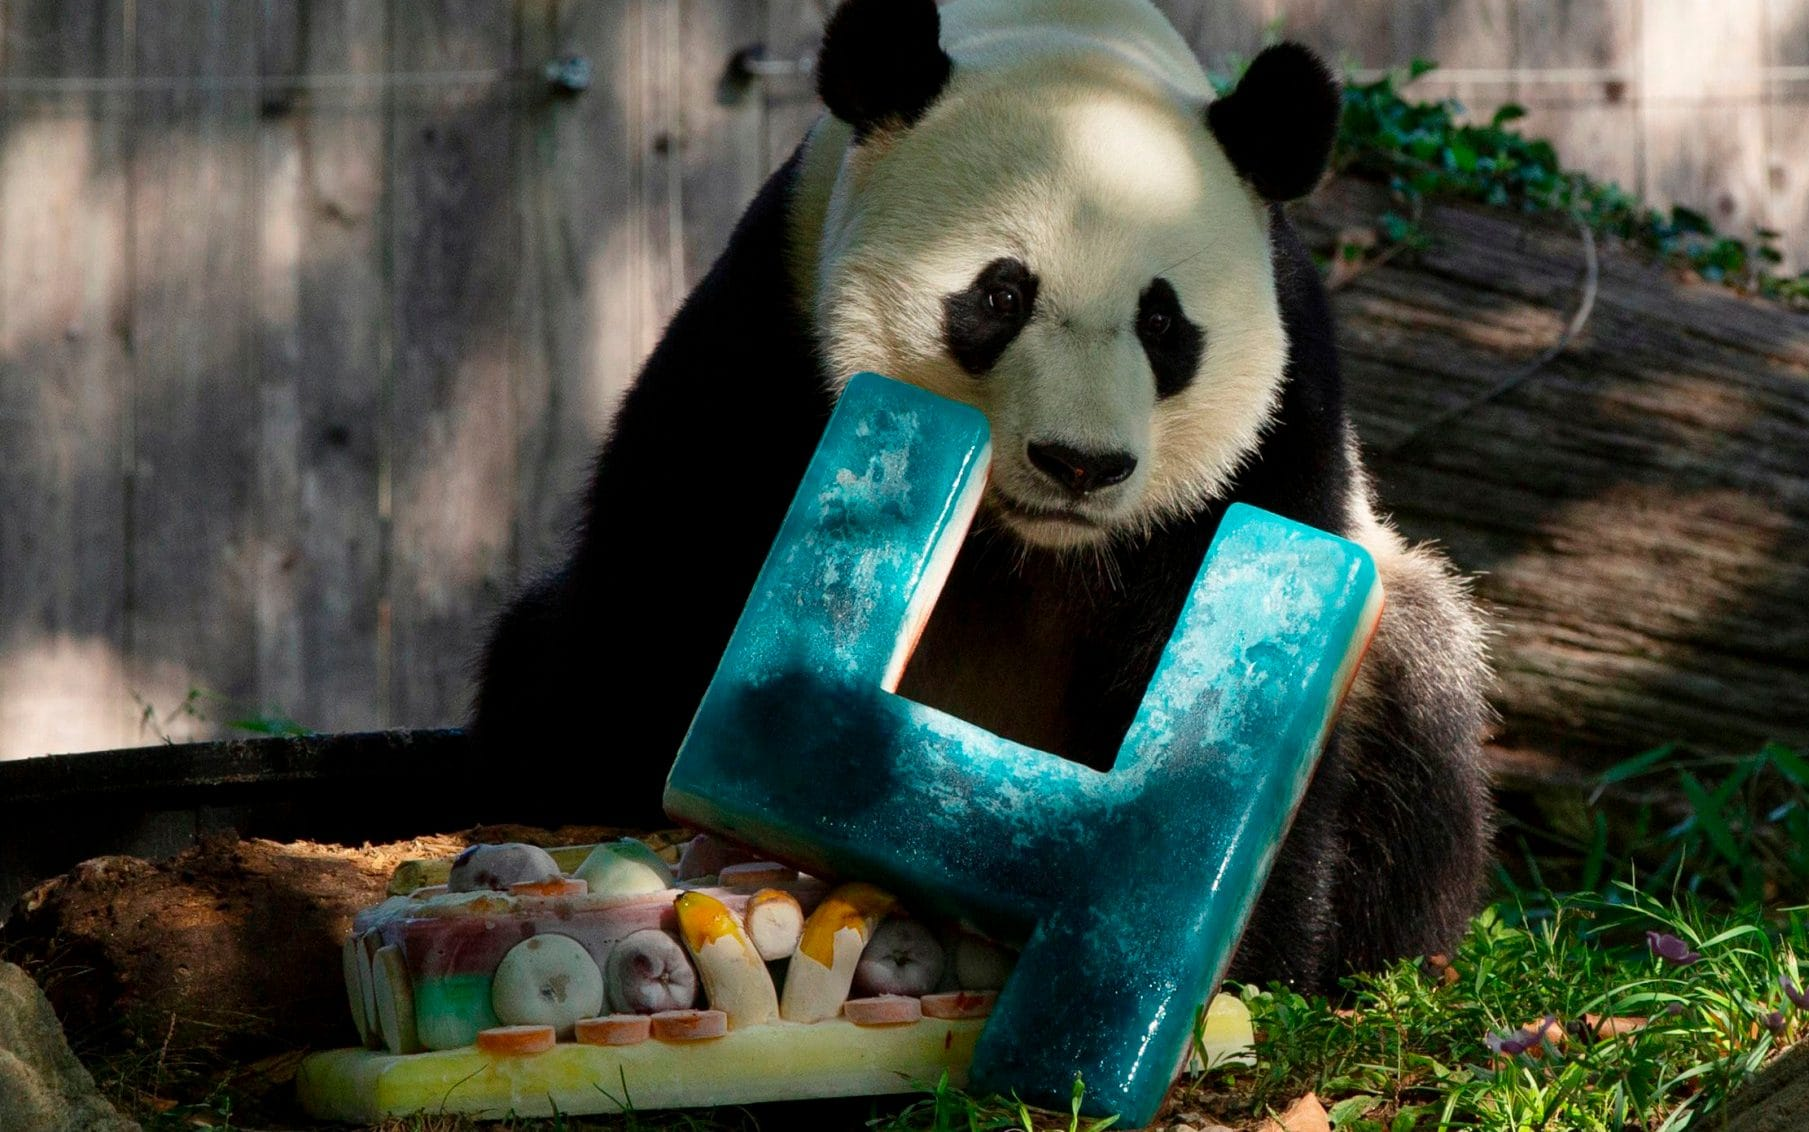 Washingtons giant pandas could be sent back to China in latest casualty of US-China trade war